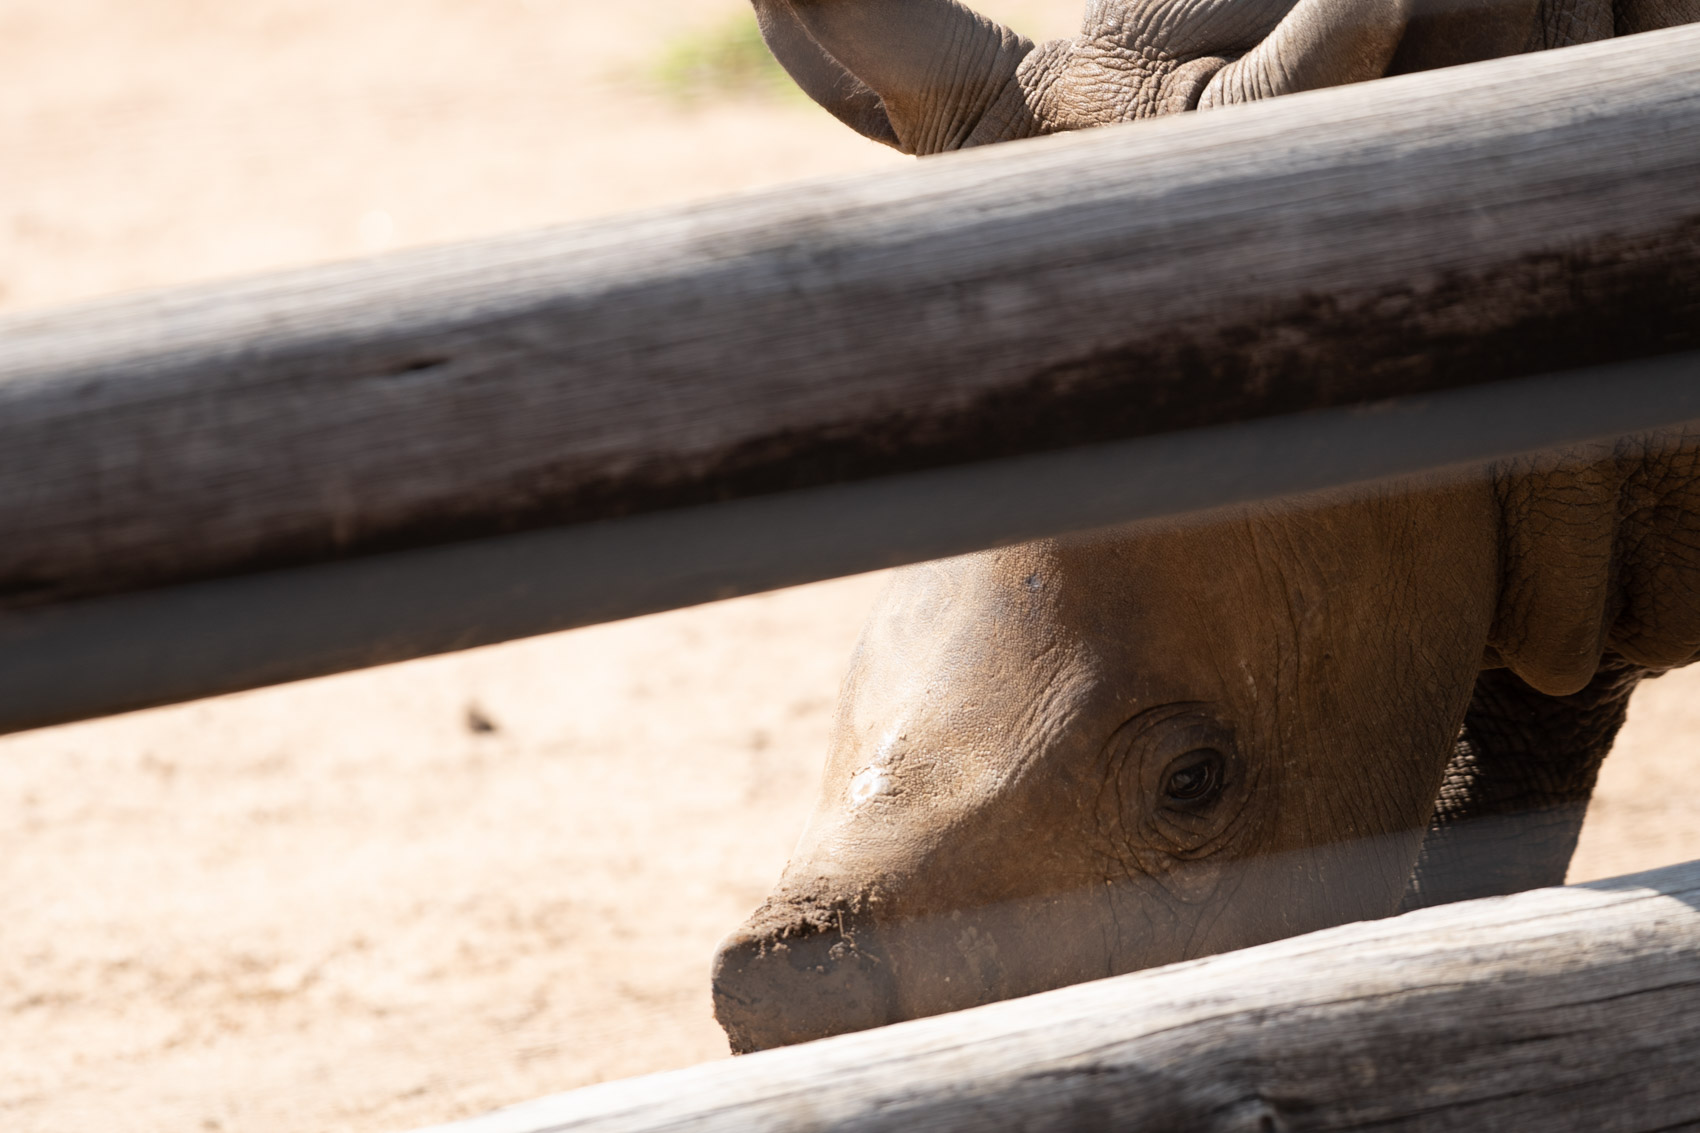 A baby southern white rhino dehorned on the other side of a wooden fence © David Coulson conservation photographer